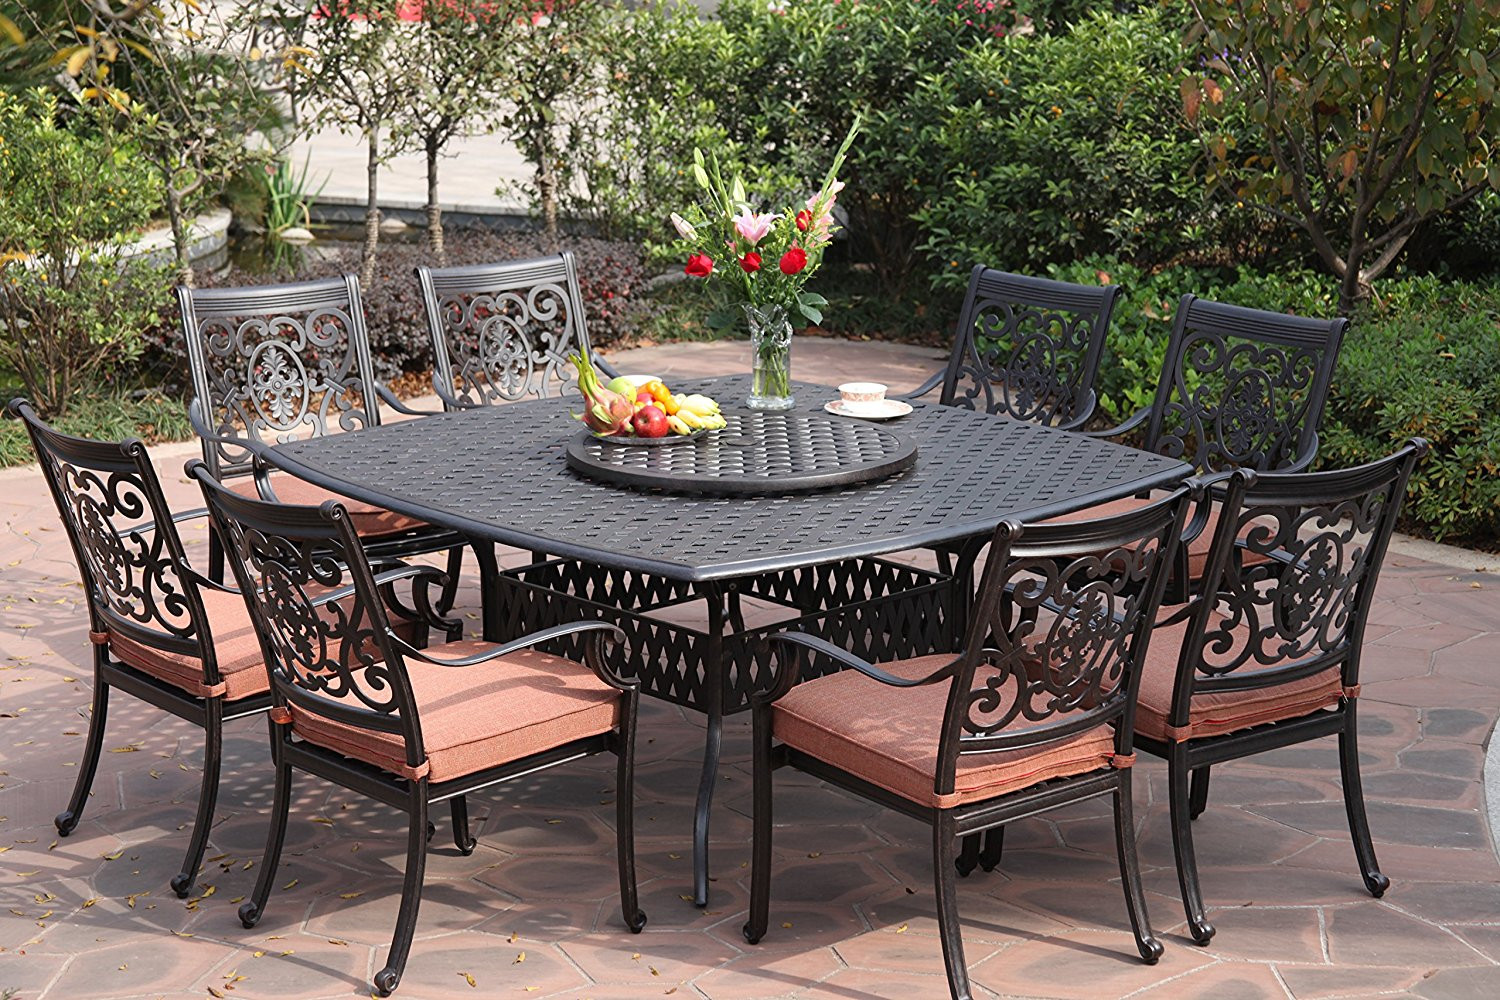 Best ideas about Patio Dining Table Clearance . Save or Pin Darlee St Cruz Cast Aluminum Piece Dining Set With Patio Now.